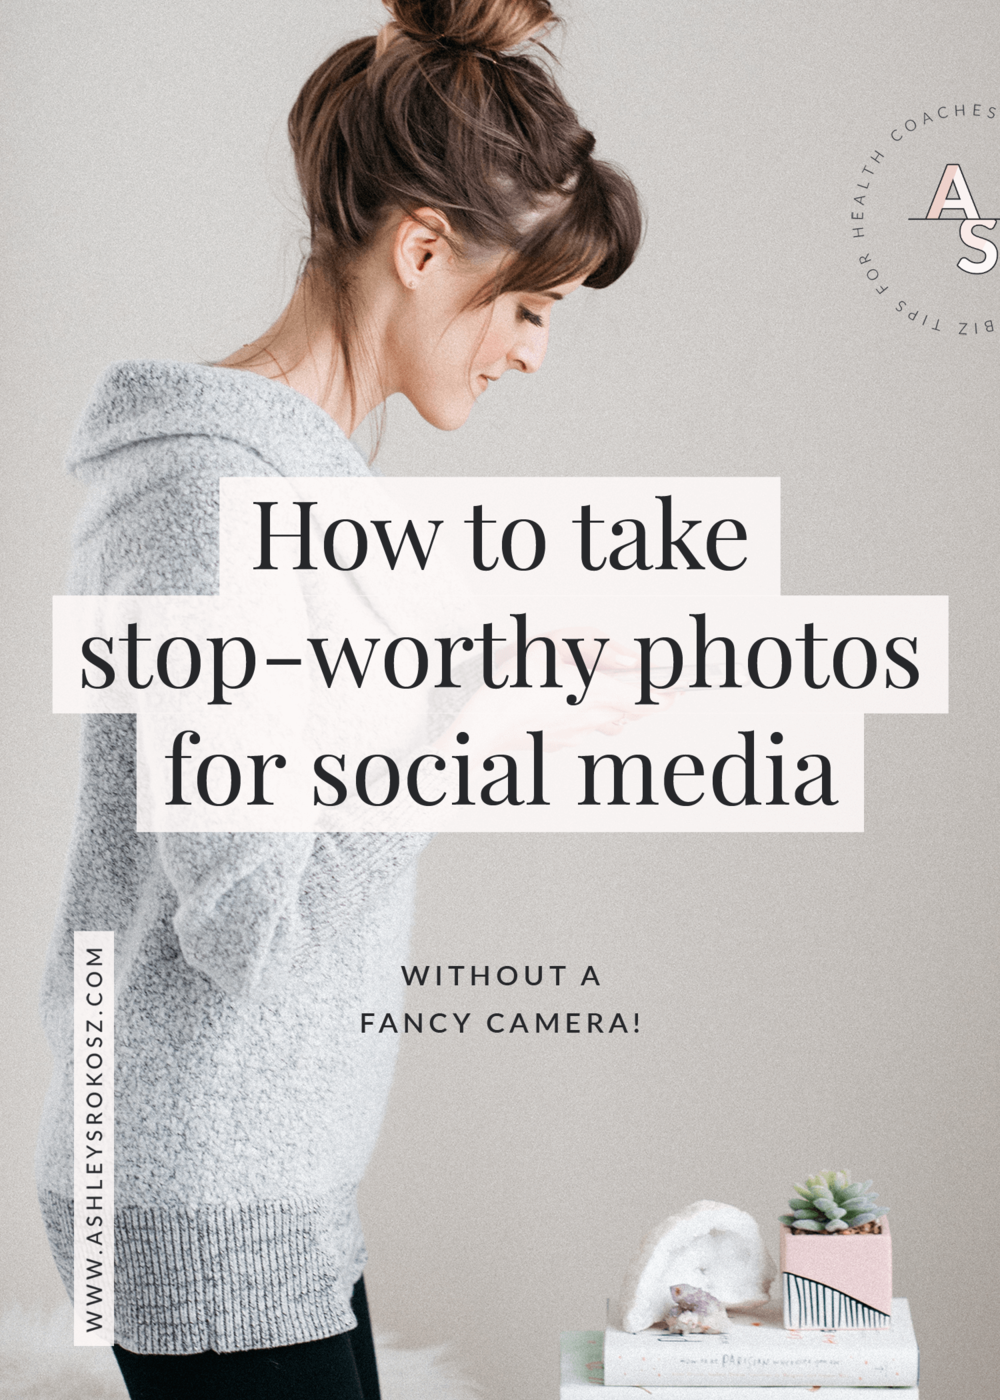 """Have you ever stopped on a beautiful picture on social media and wondered """"how do they DO that?!"""". Social media photography isn't as hard as you think, even when you're a nutritionist or health coach. Click here for 4 steps to taking beautiful photos for social media in less than 5 minutes (without a fancy camera). #healthcoach #healthcoachbusiness #nutritionist #nutritionbusiness #becomeahealthcoach"""